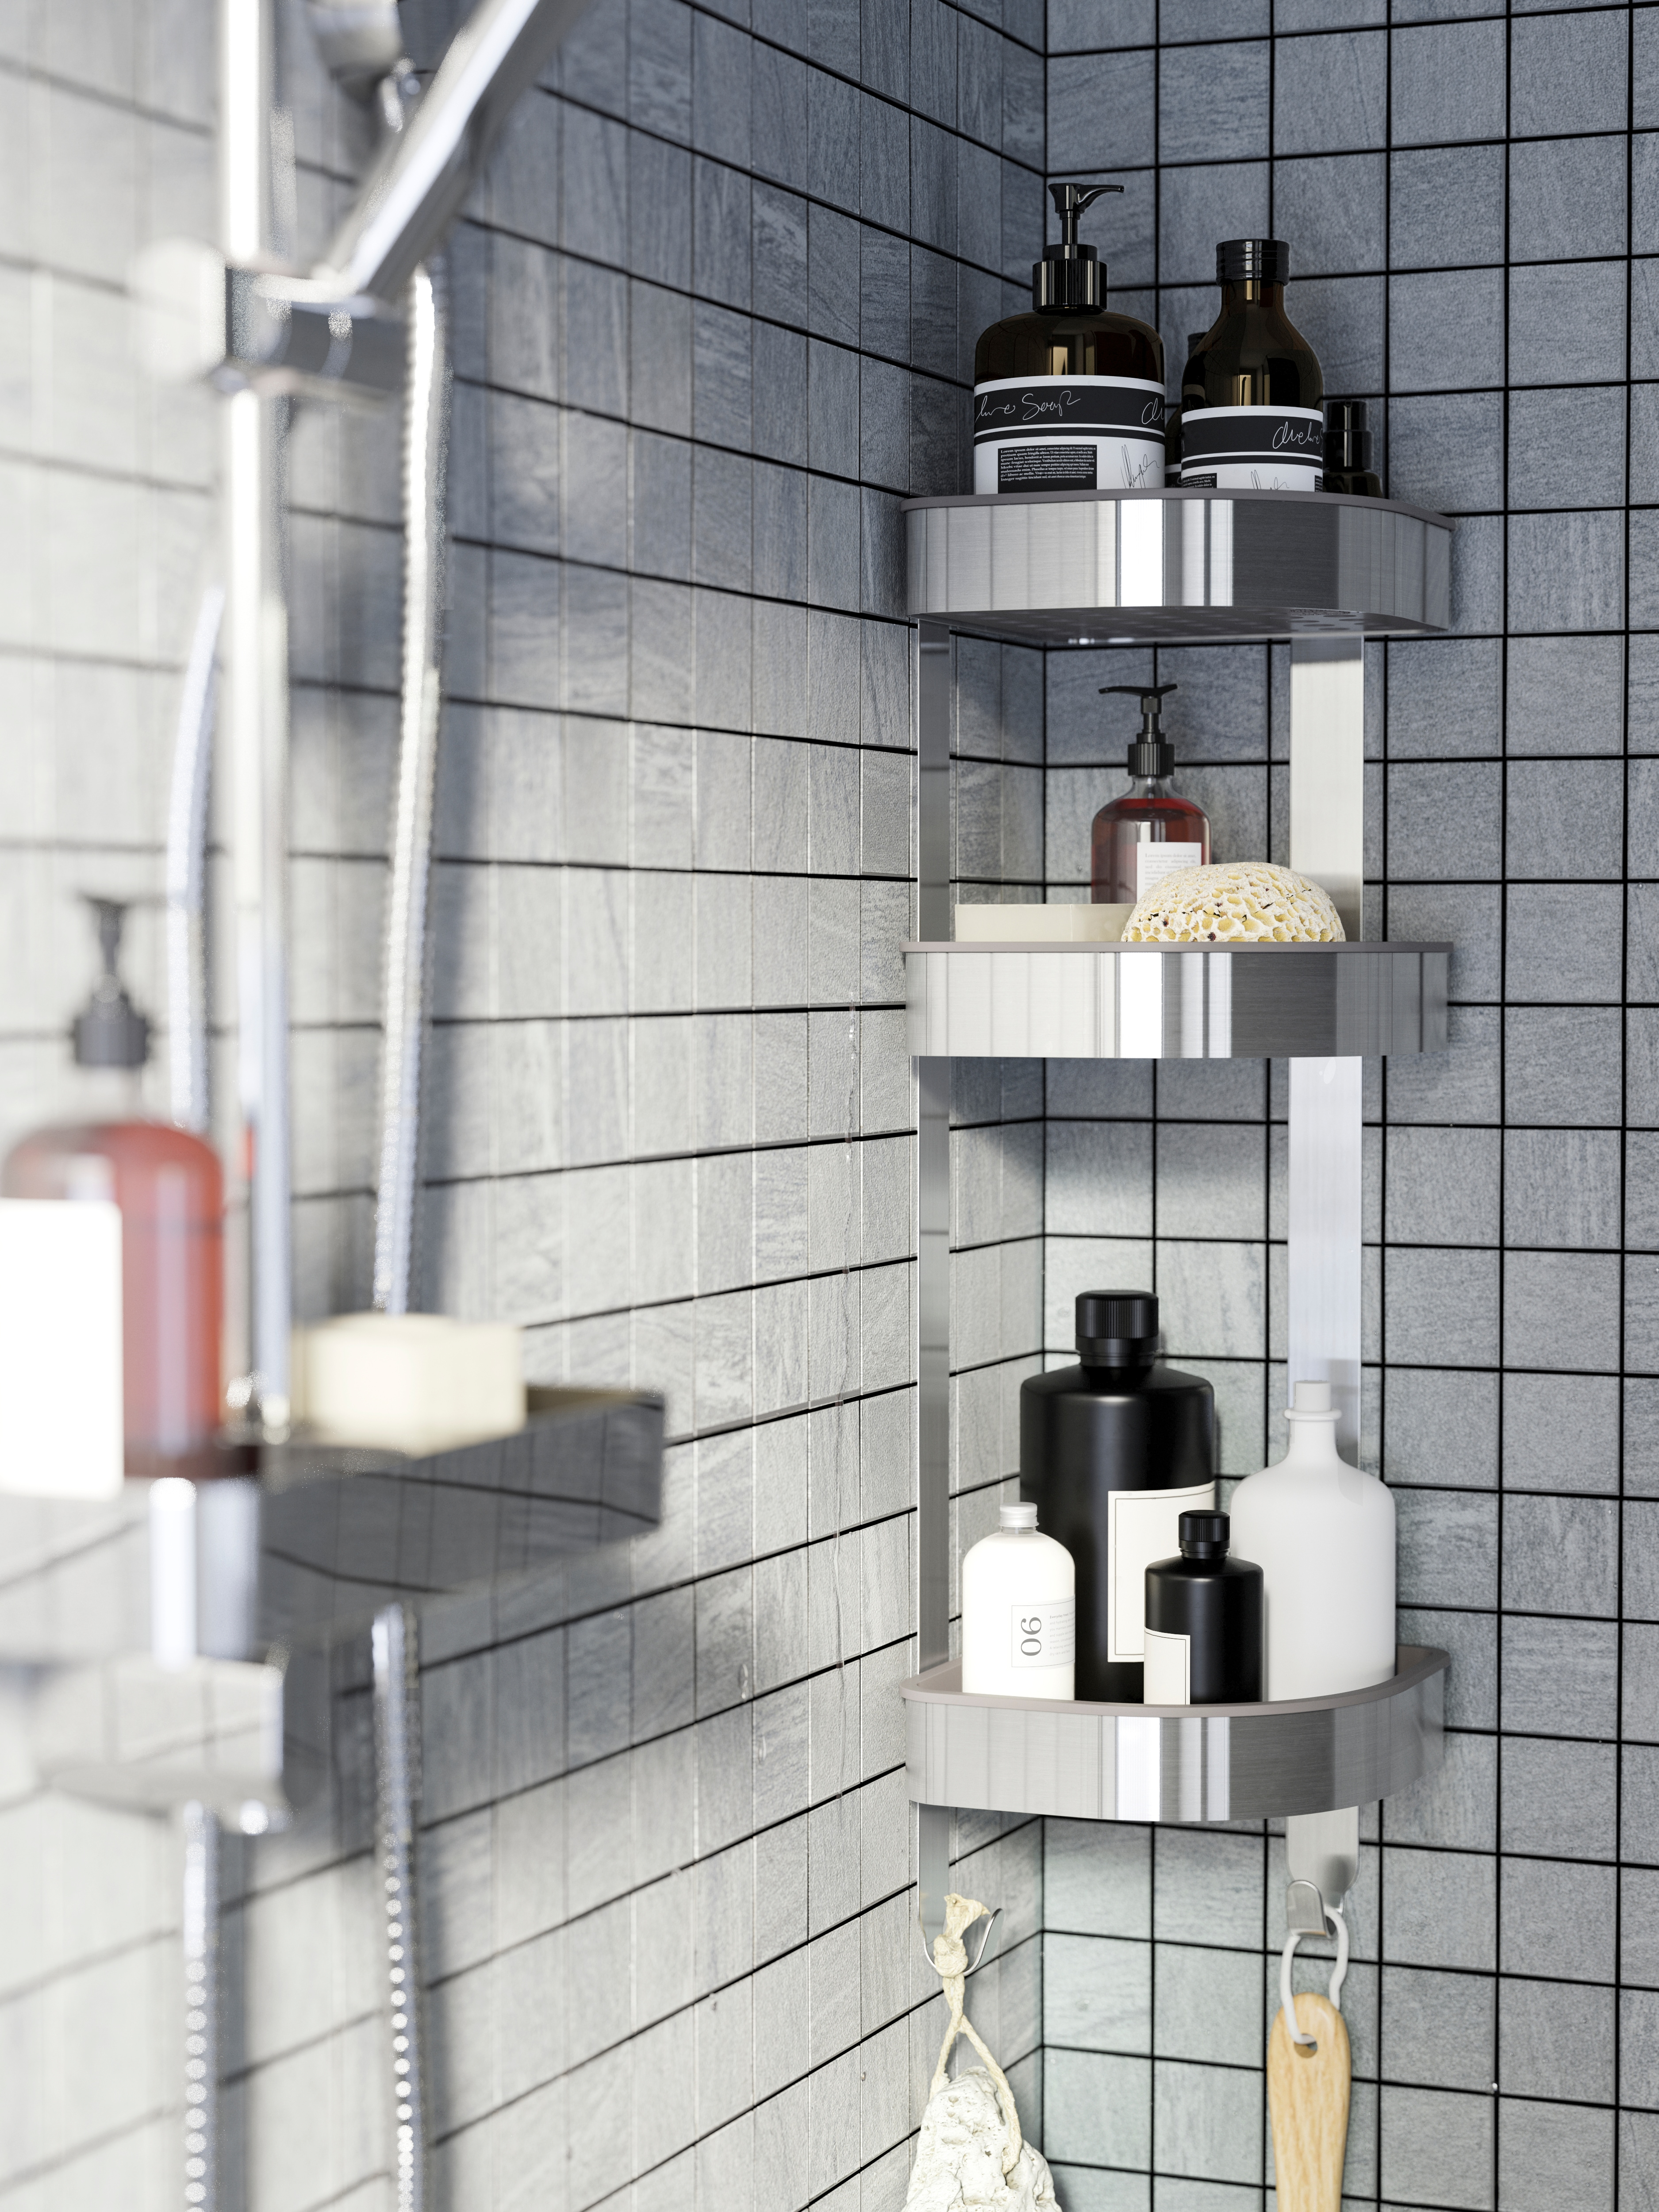 A grey tiled shower with a stainless steel BROGRUND corner wall shelf that has two hooks and bottles on its three shelves.